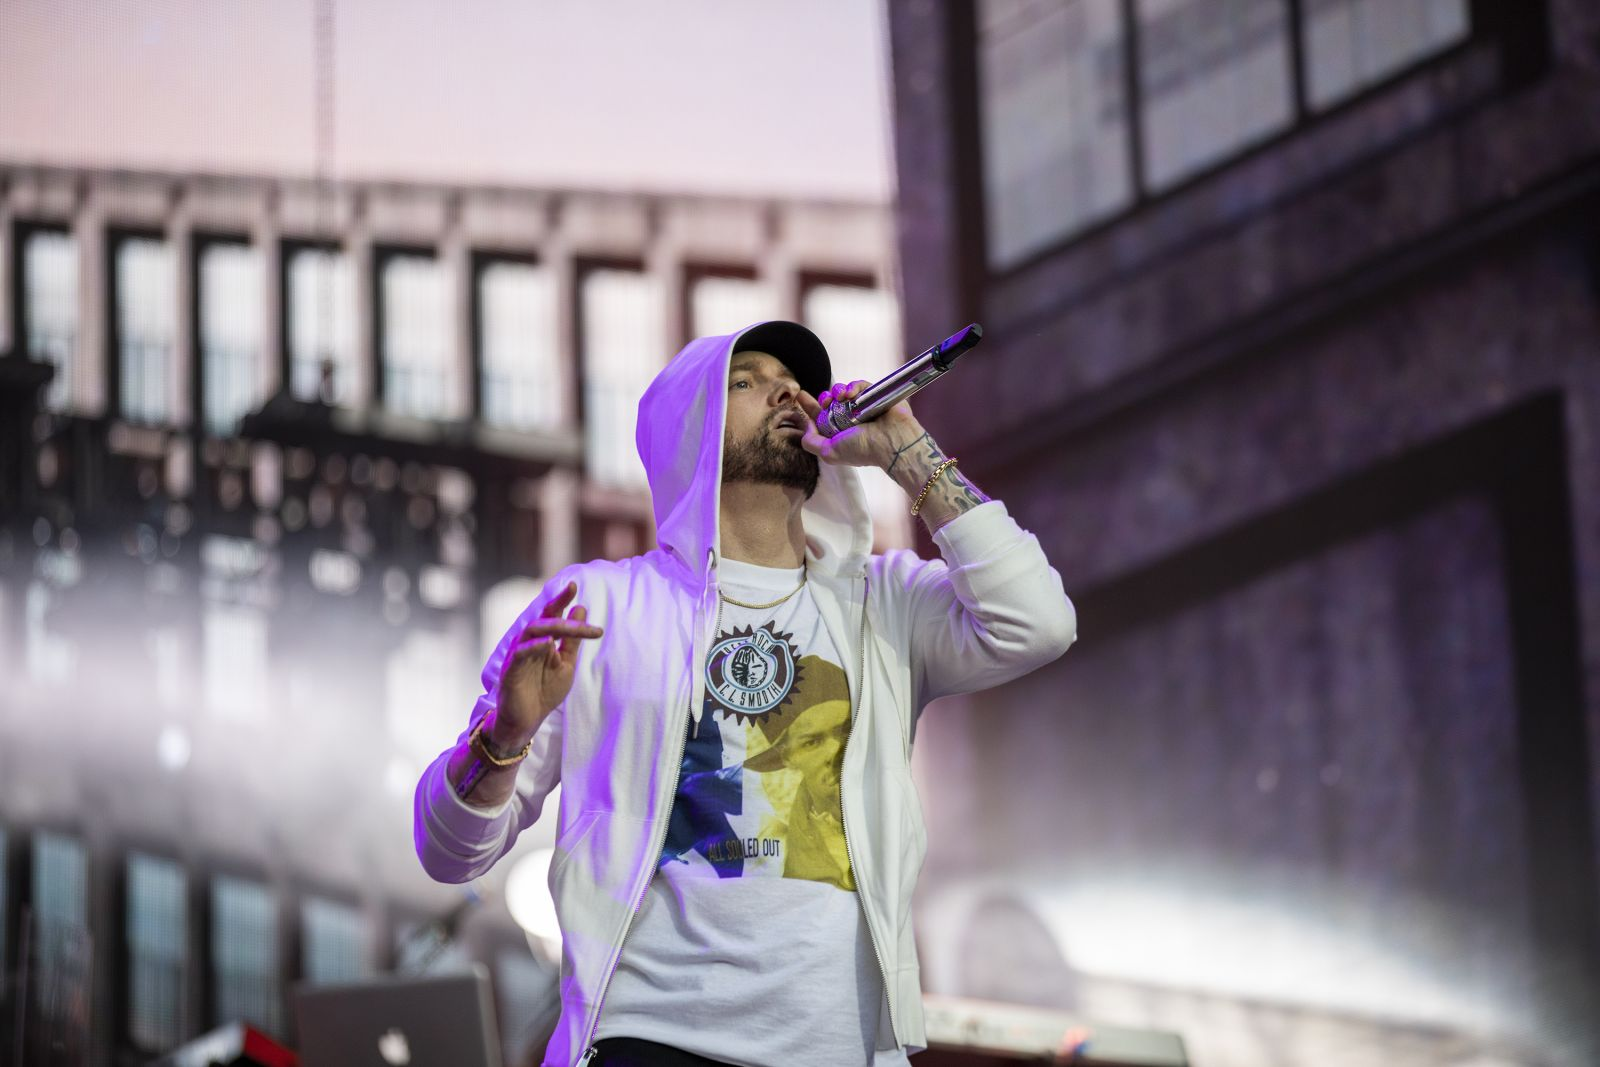 Eminem nominated for BRIT Awards 2019